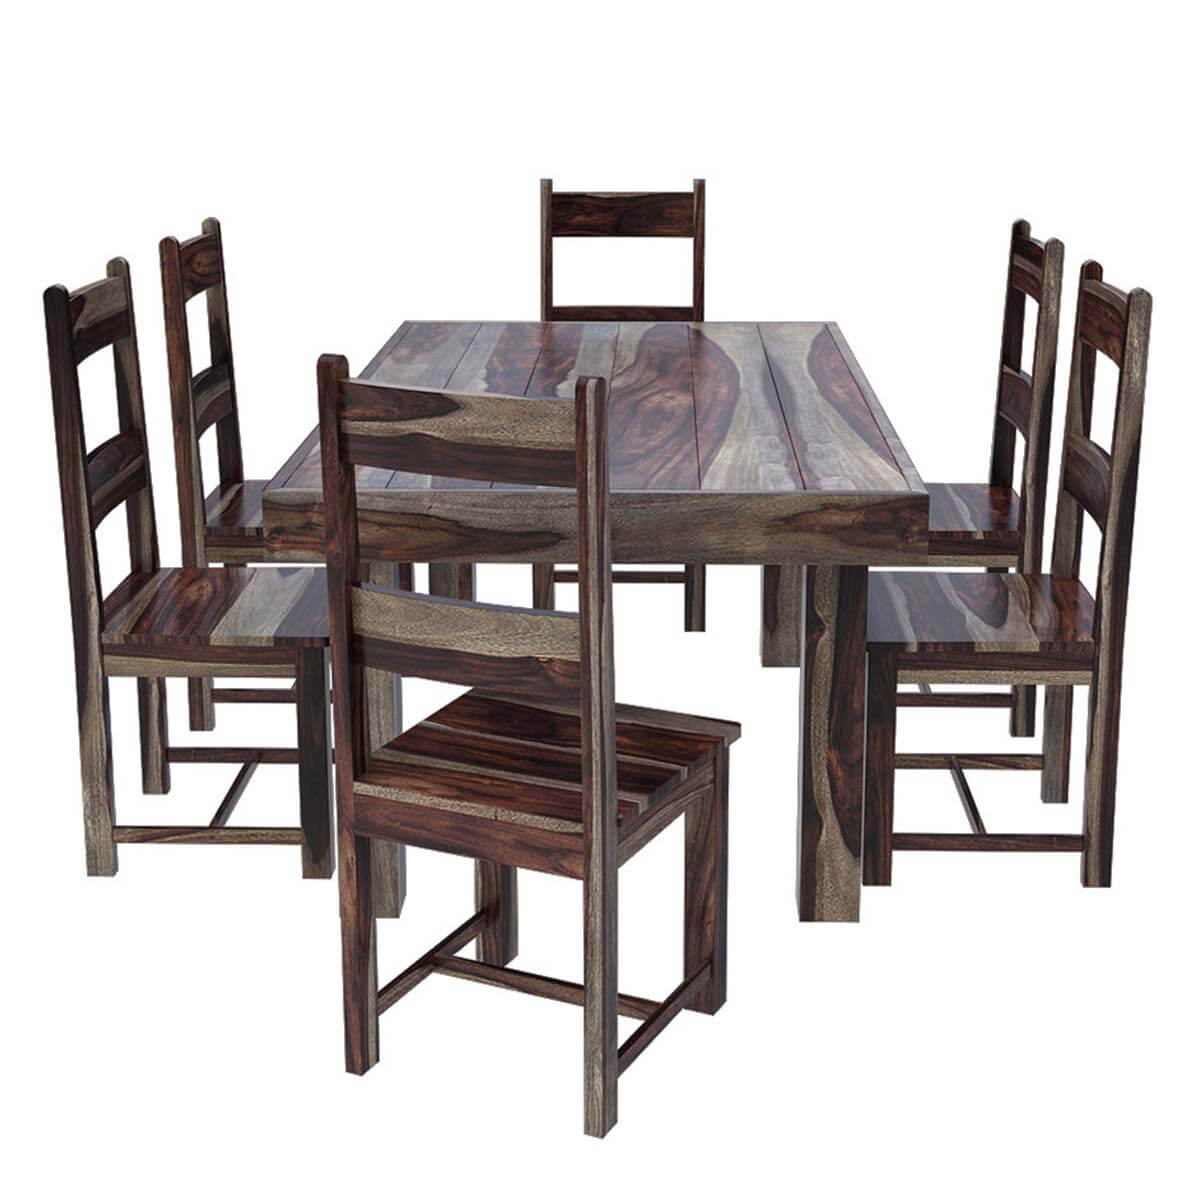 Frisco modern solid wood casual rustic dining room table for Wood dining table set